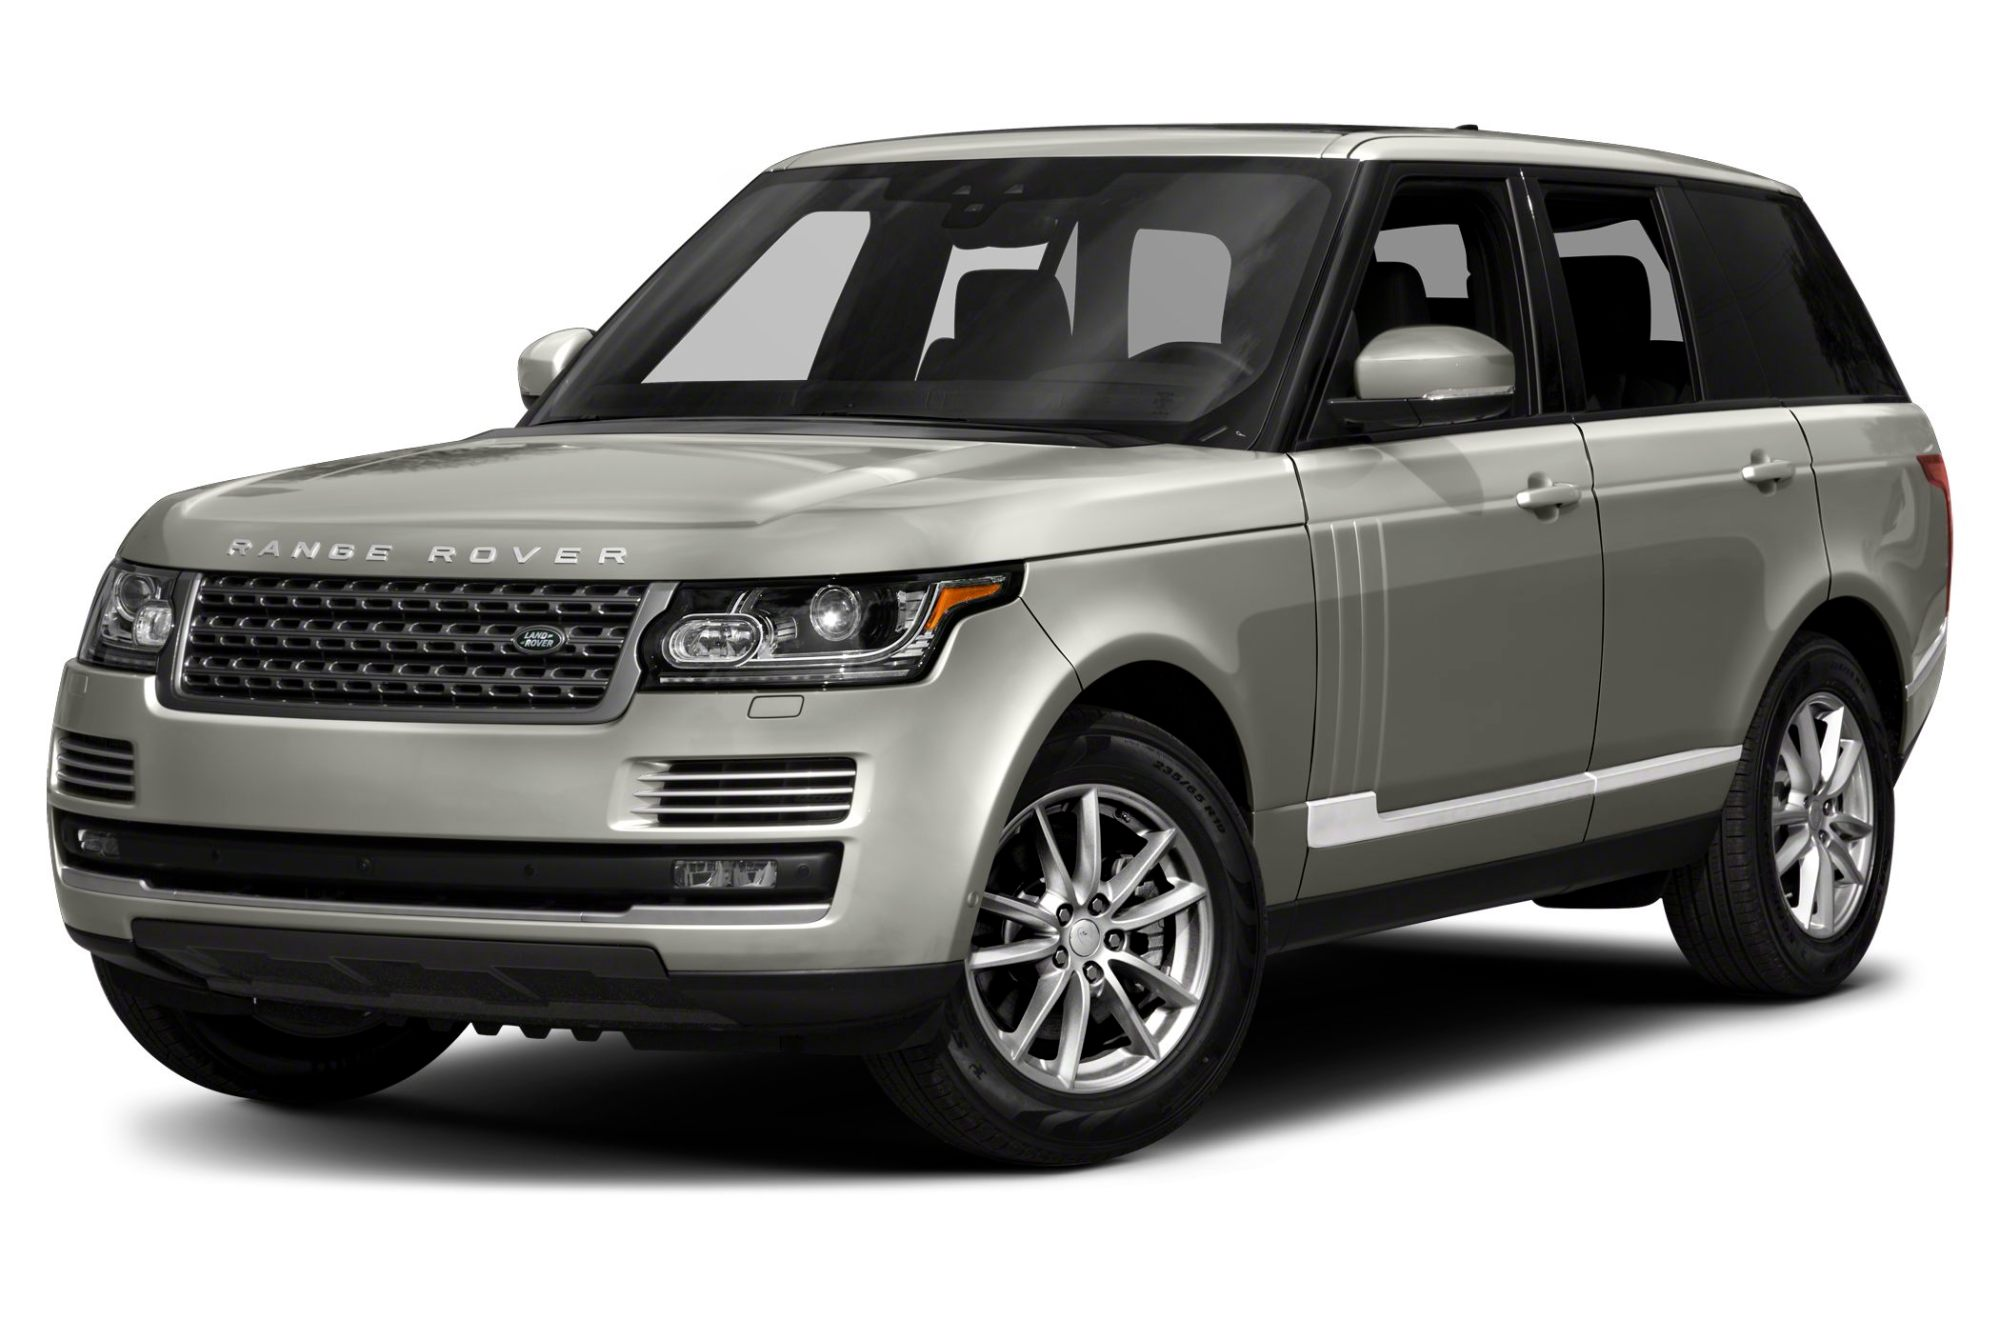 hight resolution of 2017 land rover range rover 3 0l v6 turbocharged diesel hse td6 4dr 4x4 specs and prices